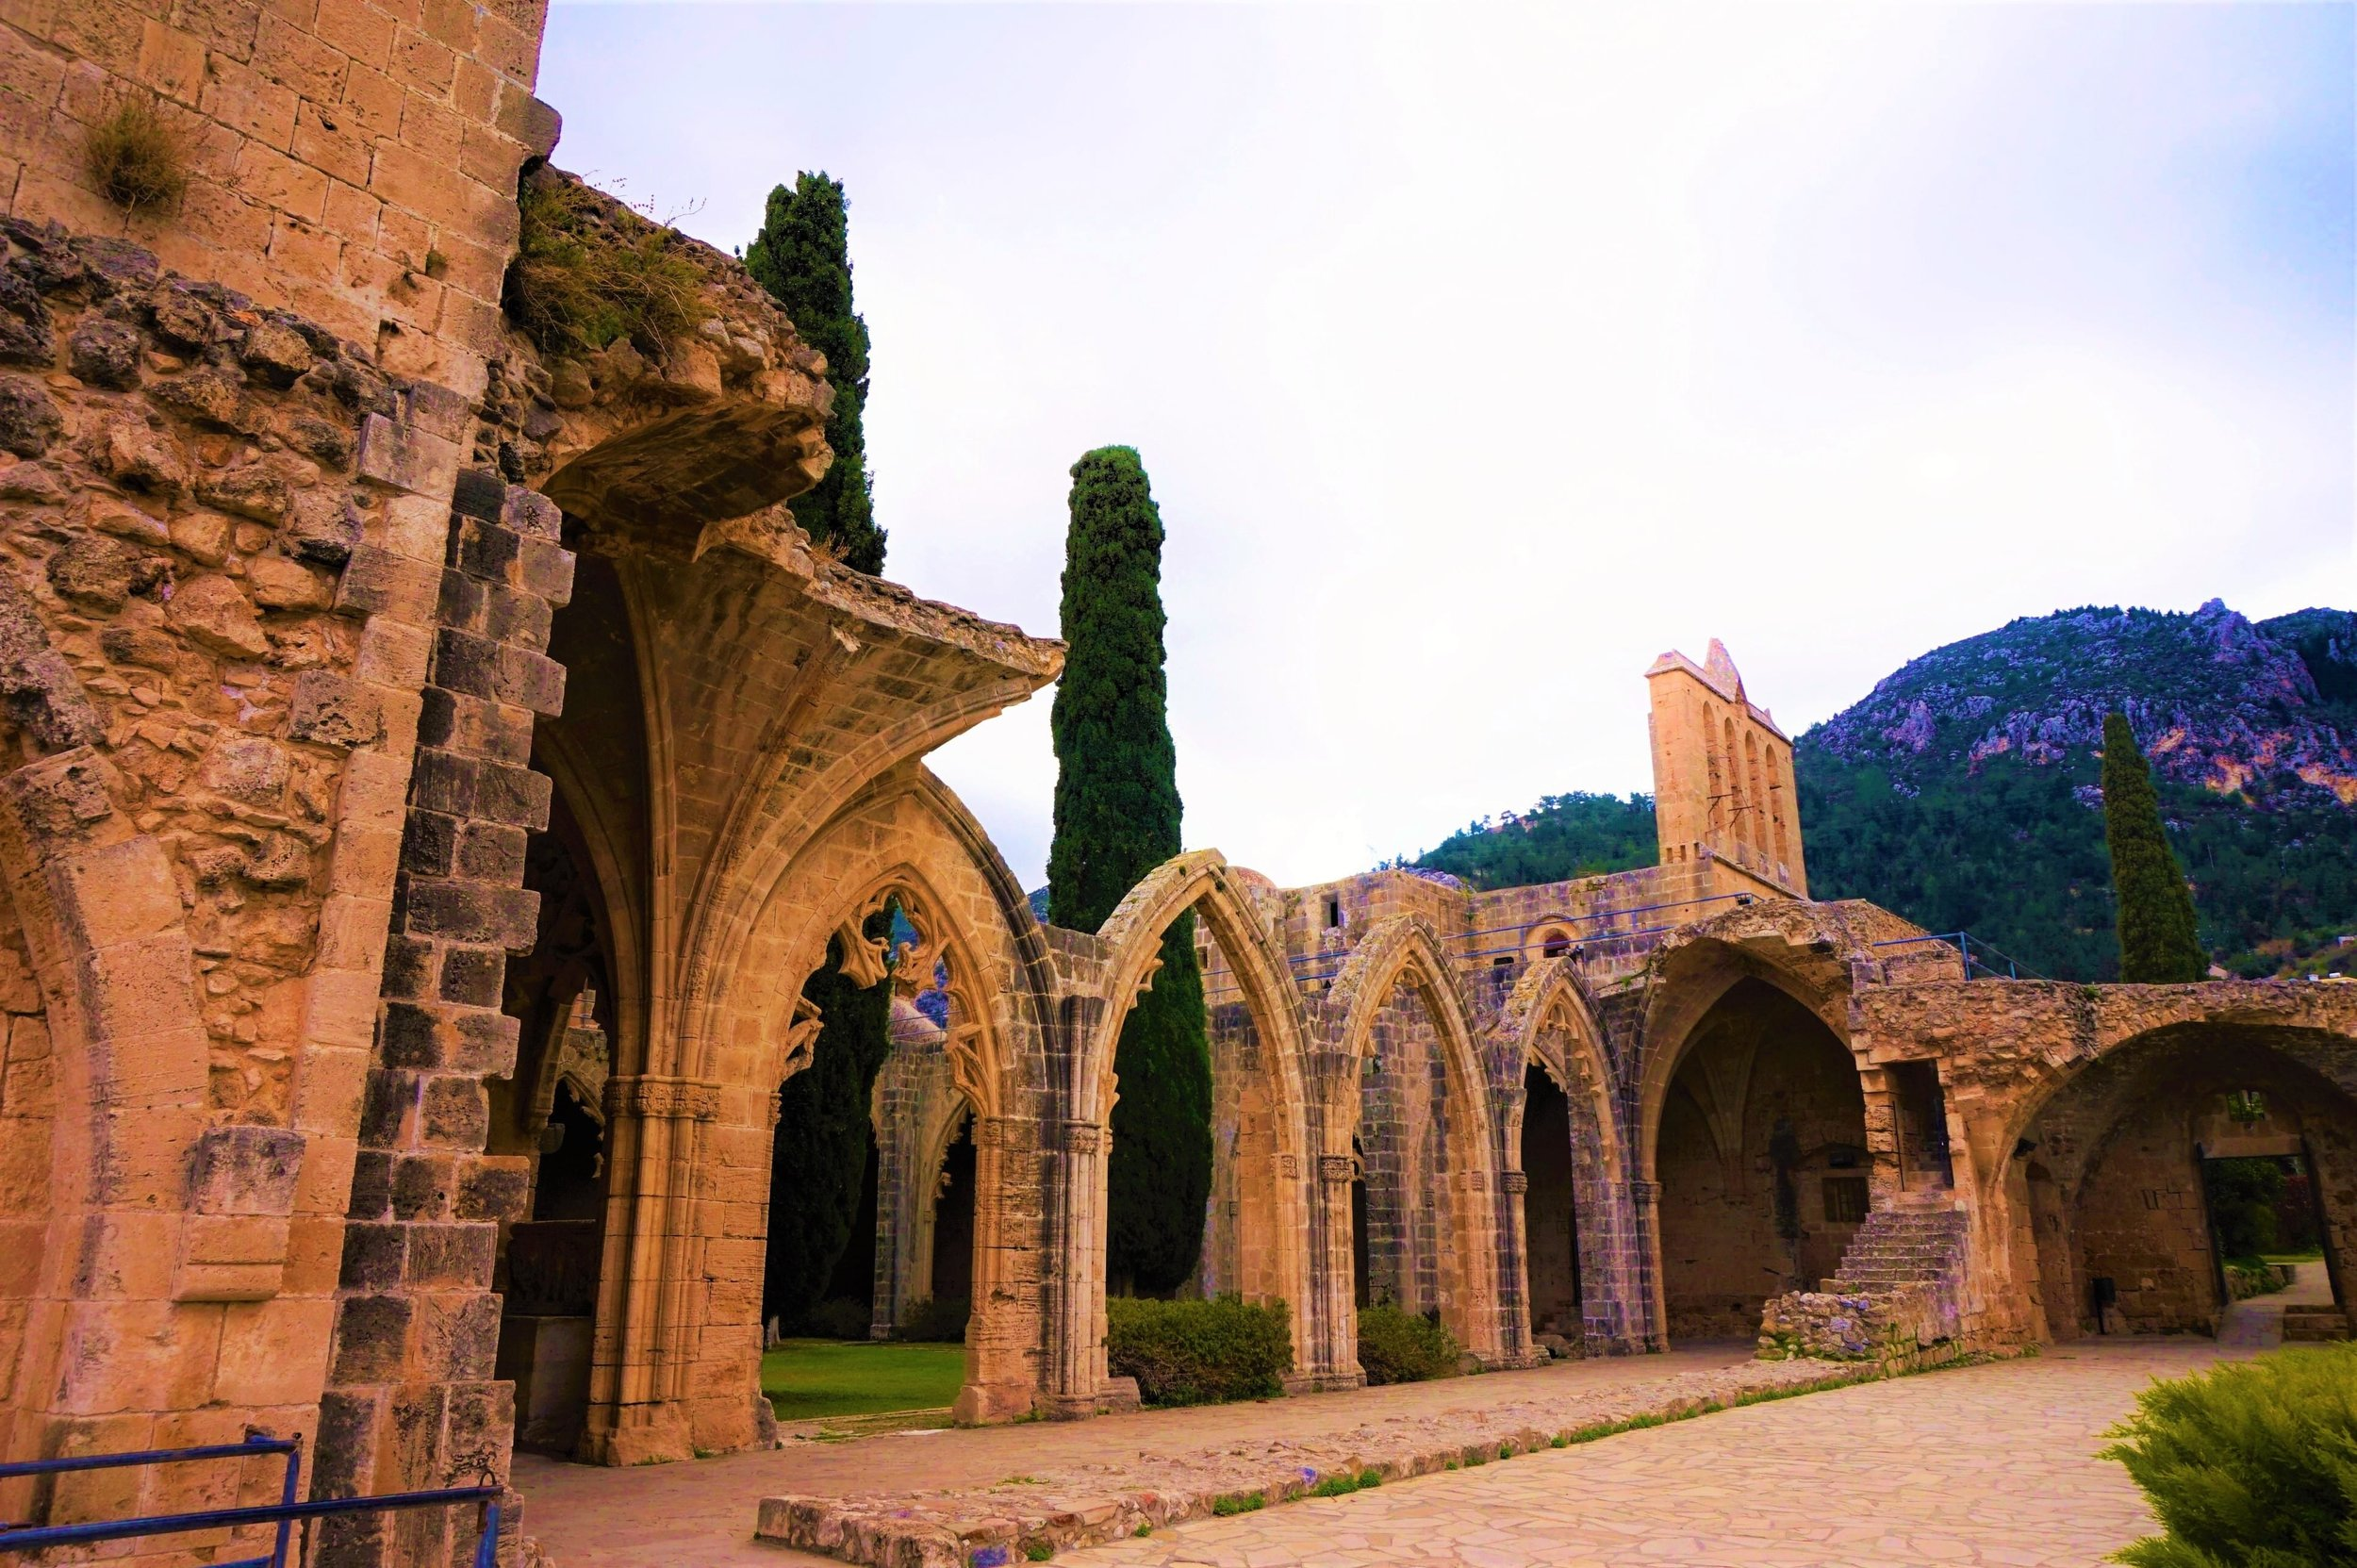 Bellapais monastery is a must visit in northern Cyprus, should be part of your north Cyprus road trip.